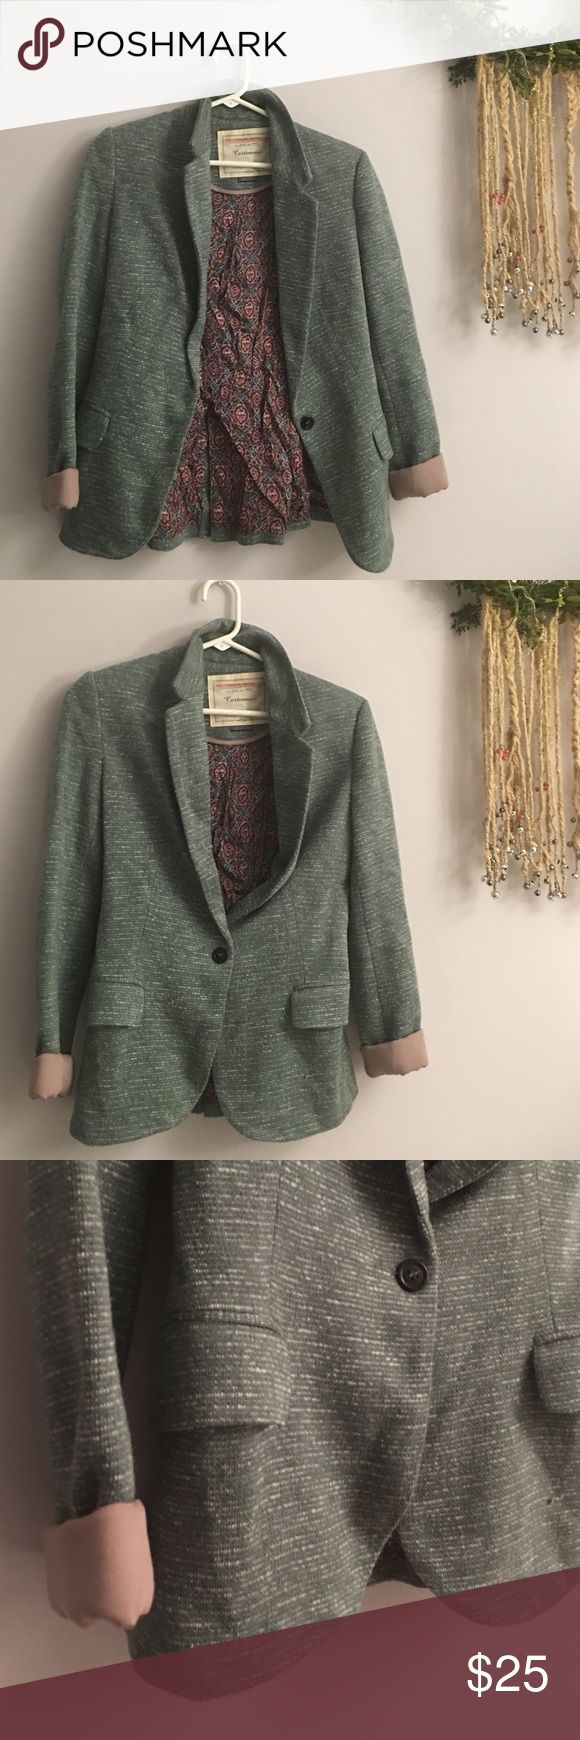 Anthropologie Sweet Mint Blazer Cartonnier. Green with white thread piping. Paisley lining. Structured but waist jacket. Beautiful and professional. Perfect to kick up your spring professional wardrobe! Anthropologie Jackets & Coats Blazers